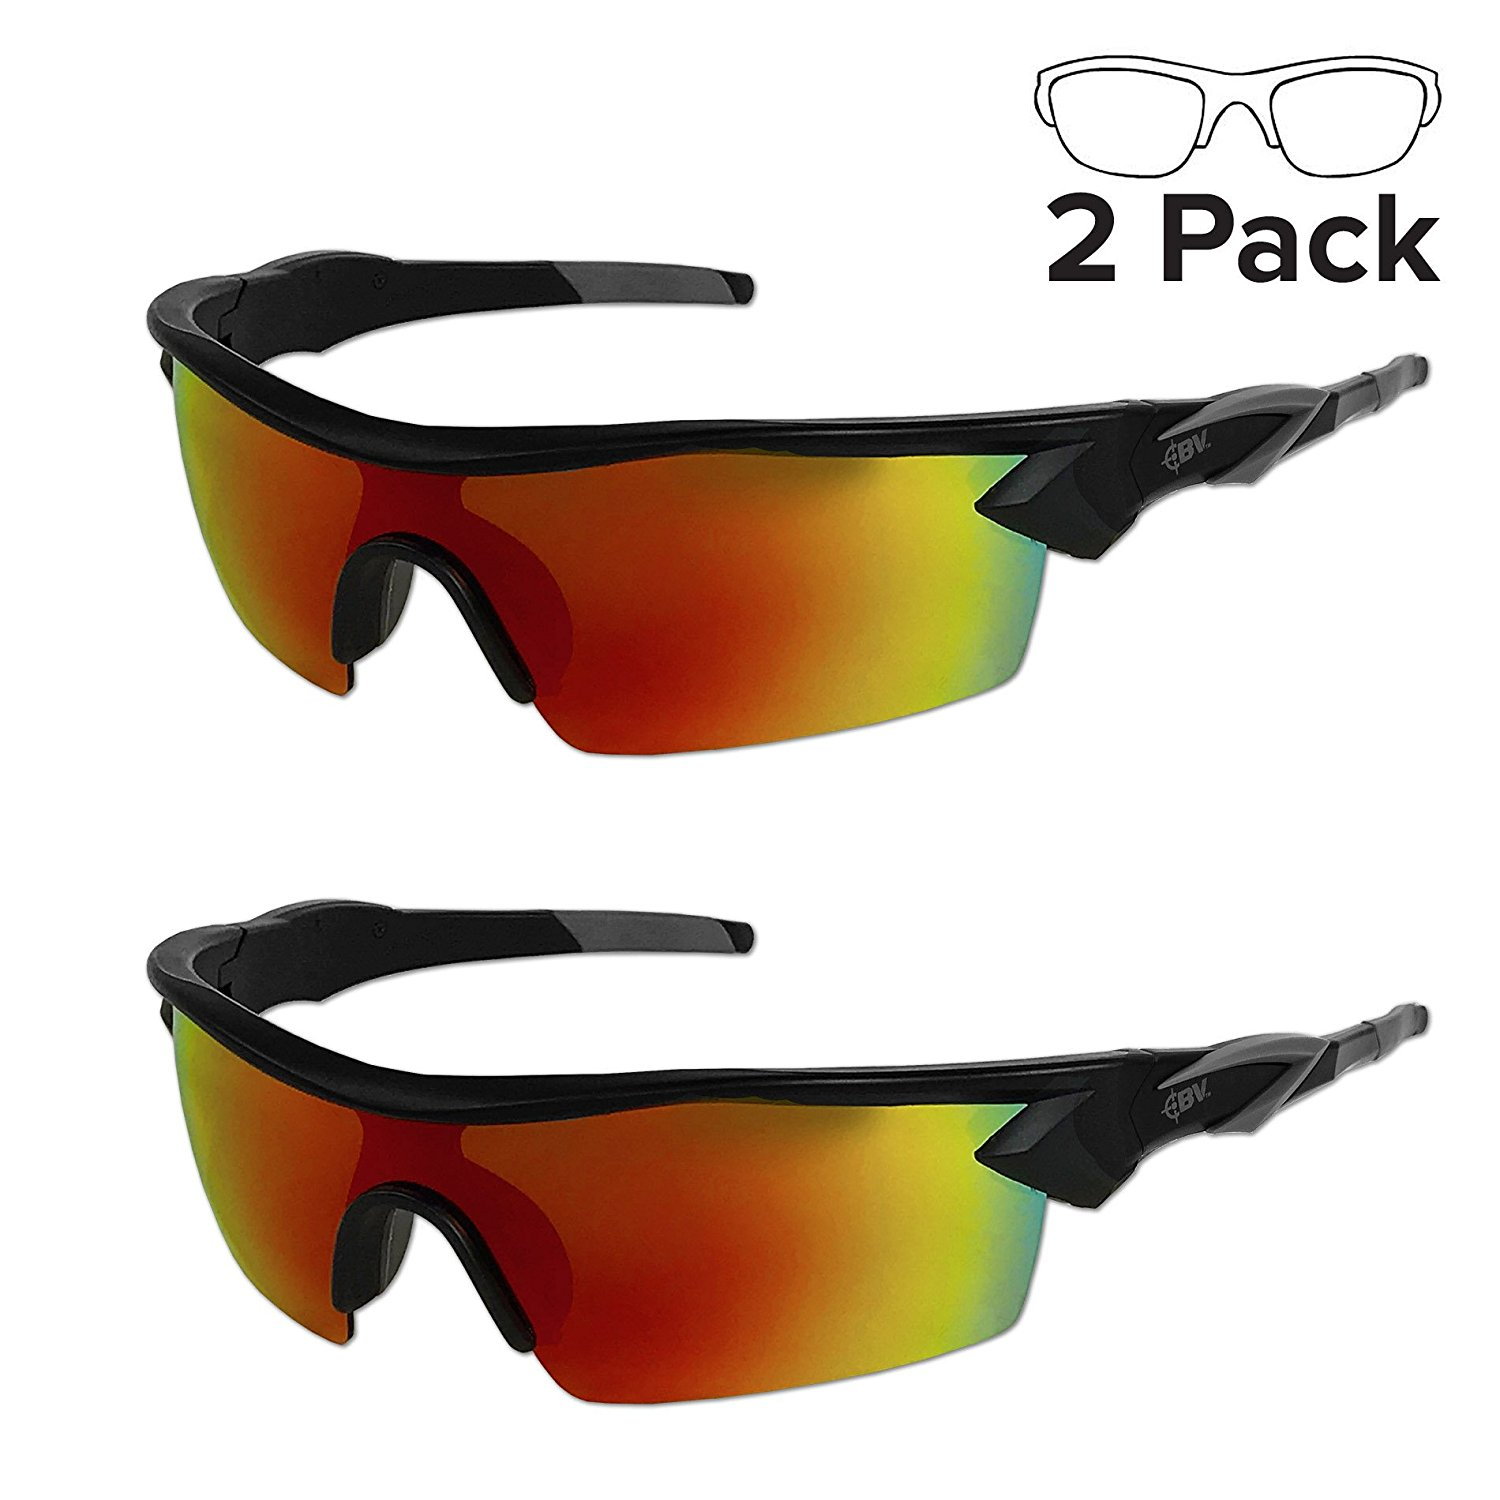 39640191f95 Buy Battle Vision HD Polarized Sunglasses by Atomic Beam